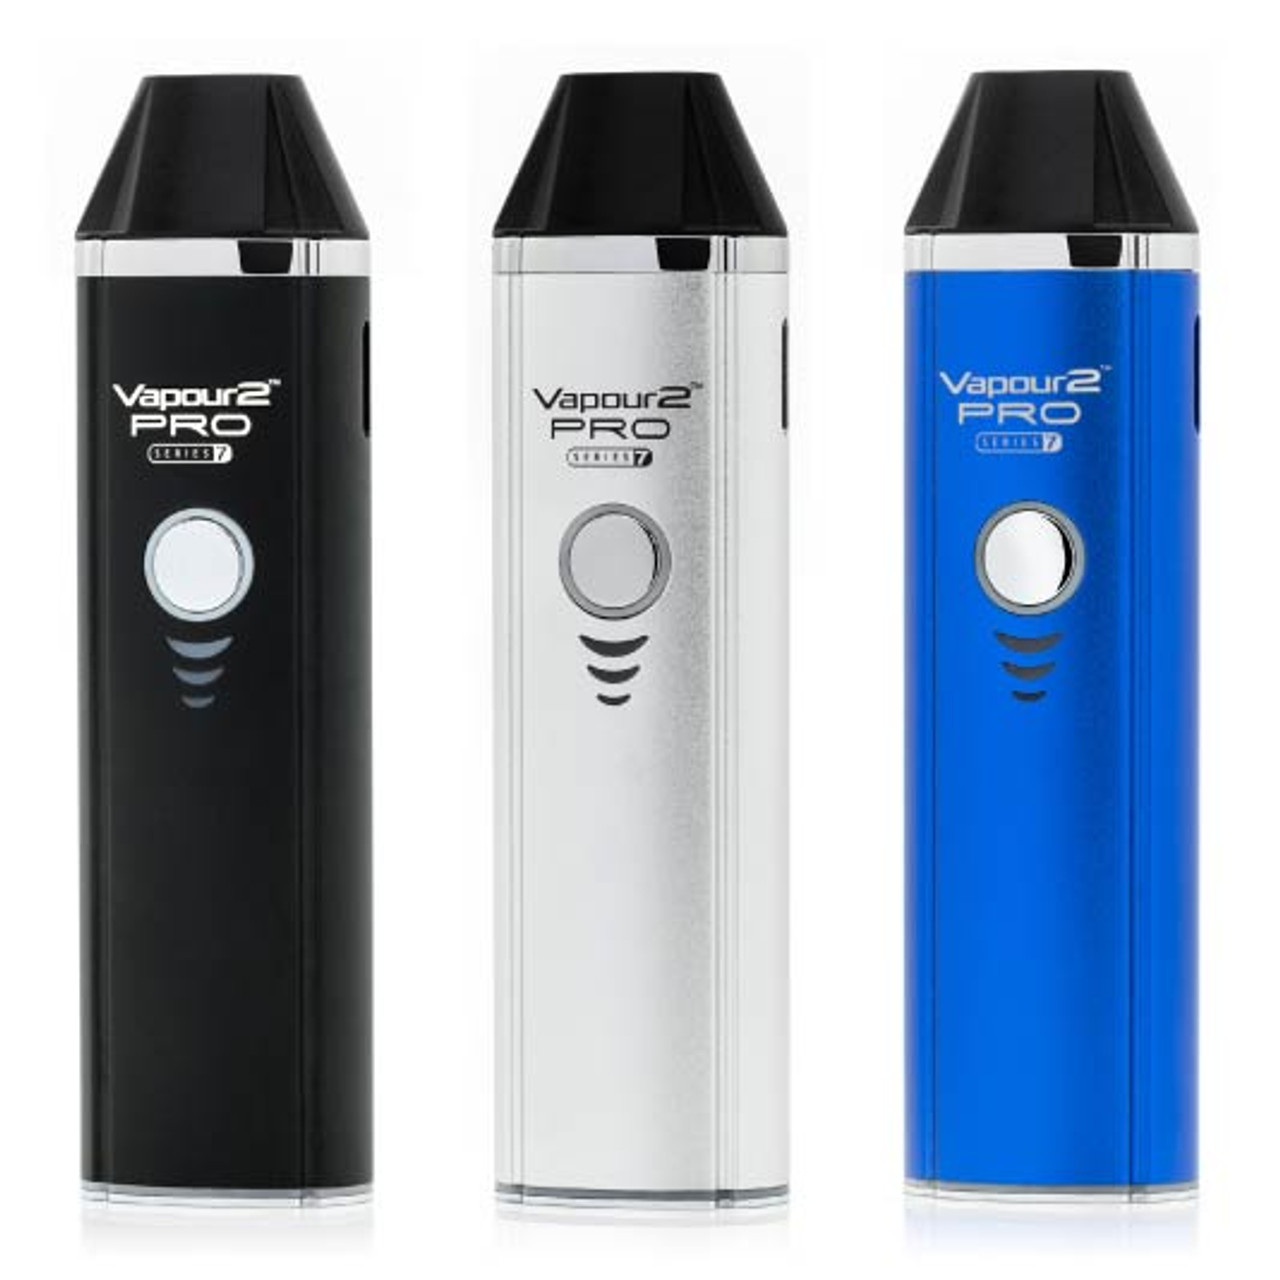 Vapour2 PRO Series 7 with dry herb vaporizer option